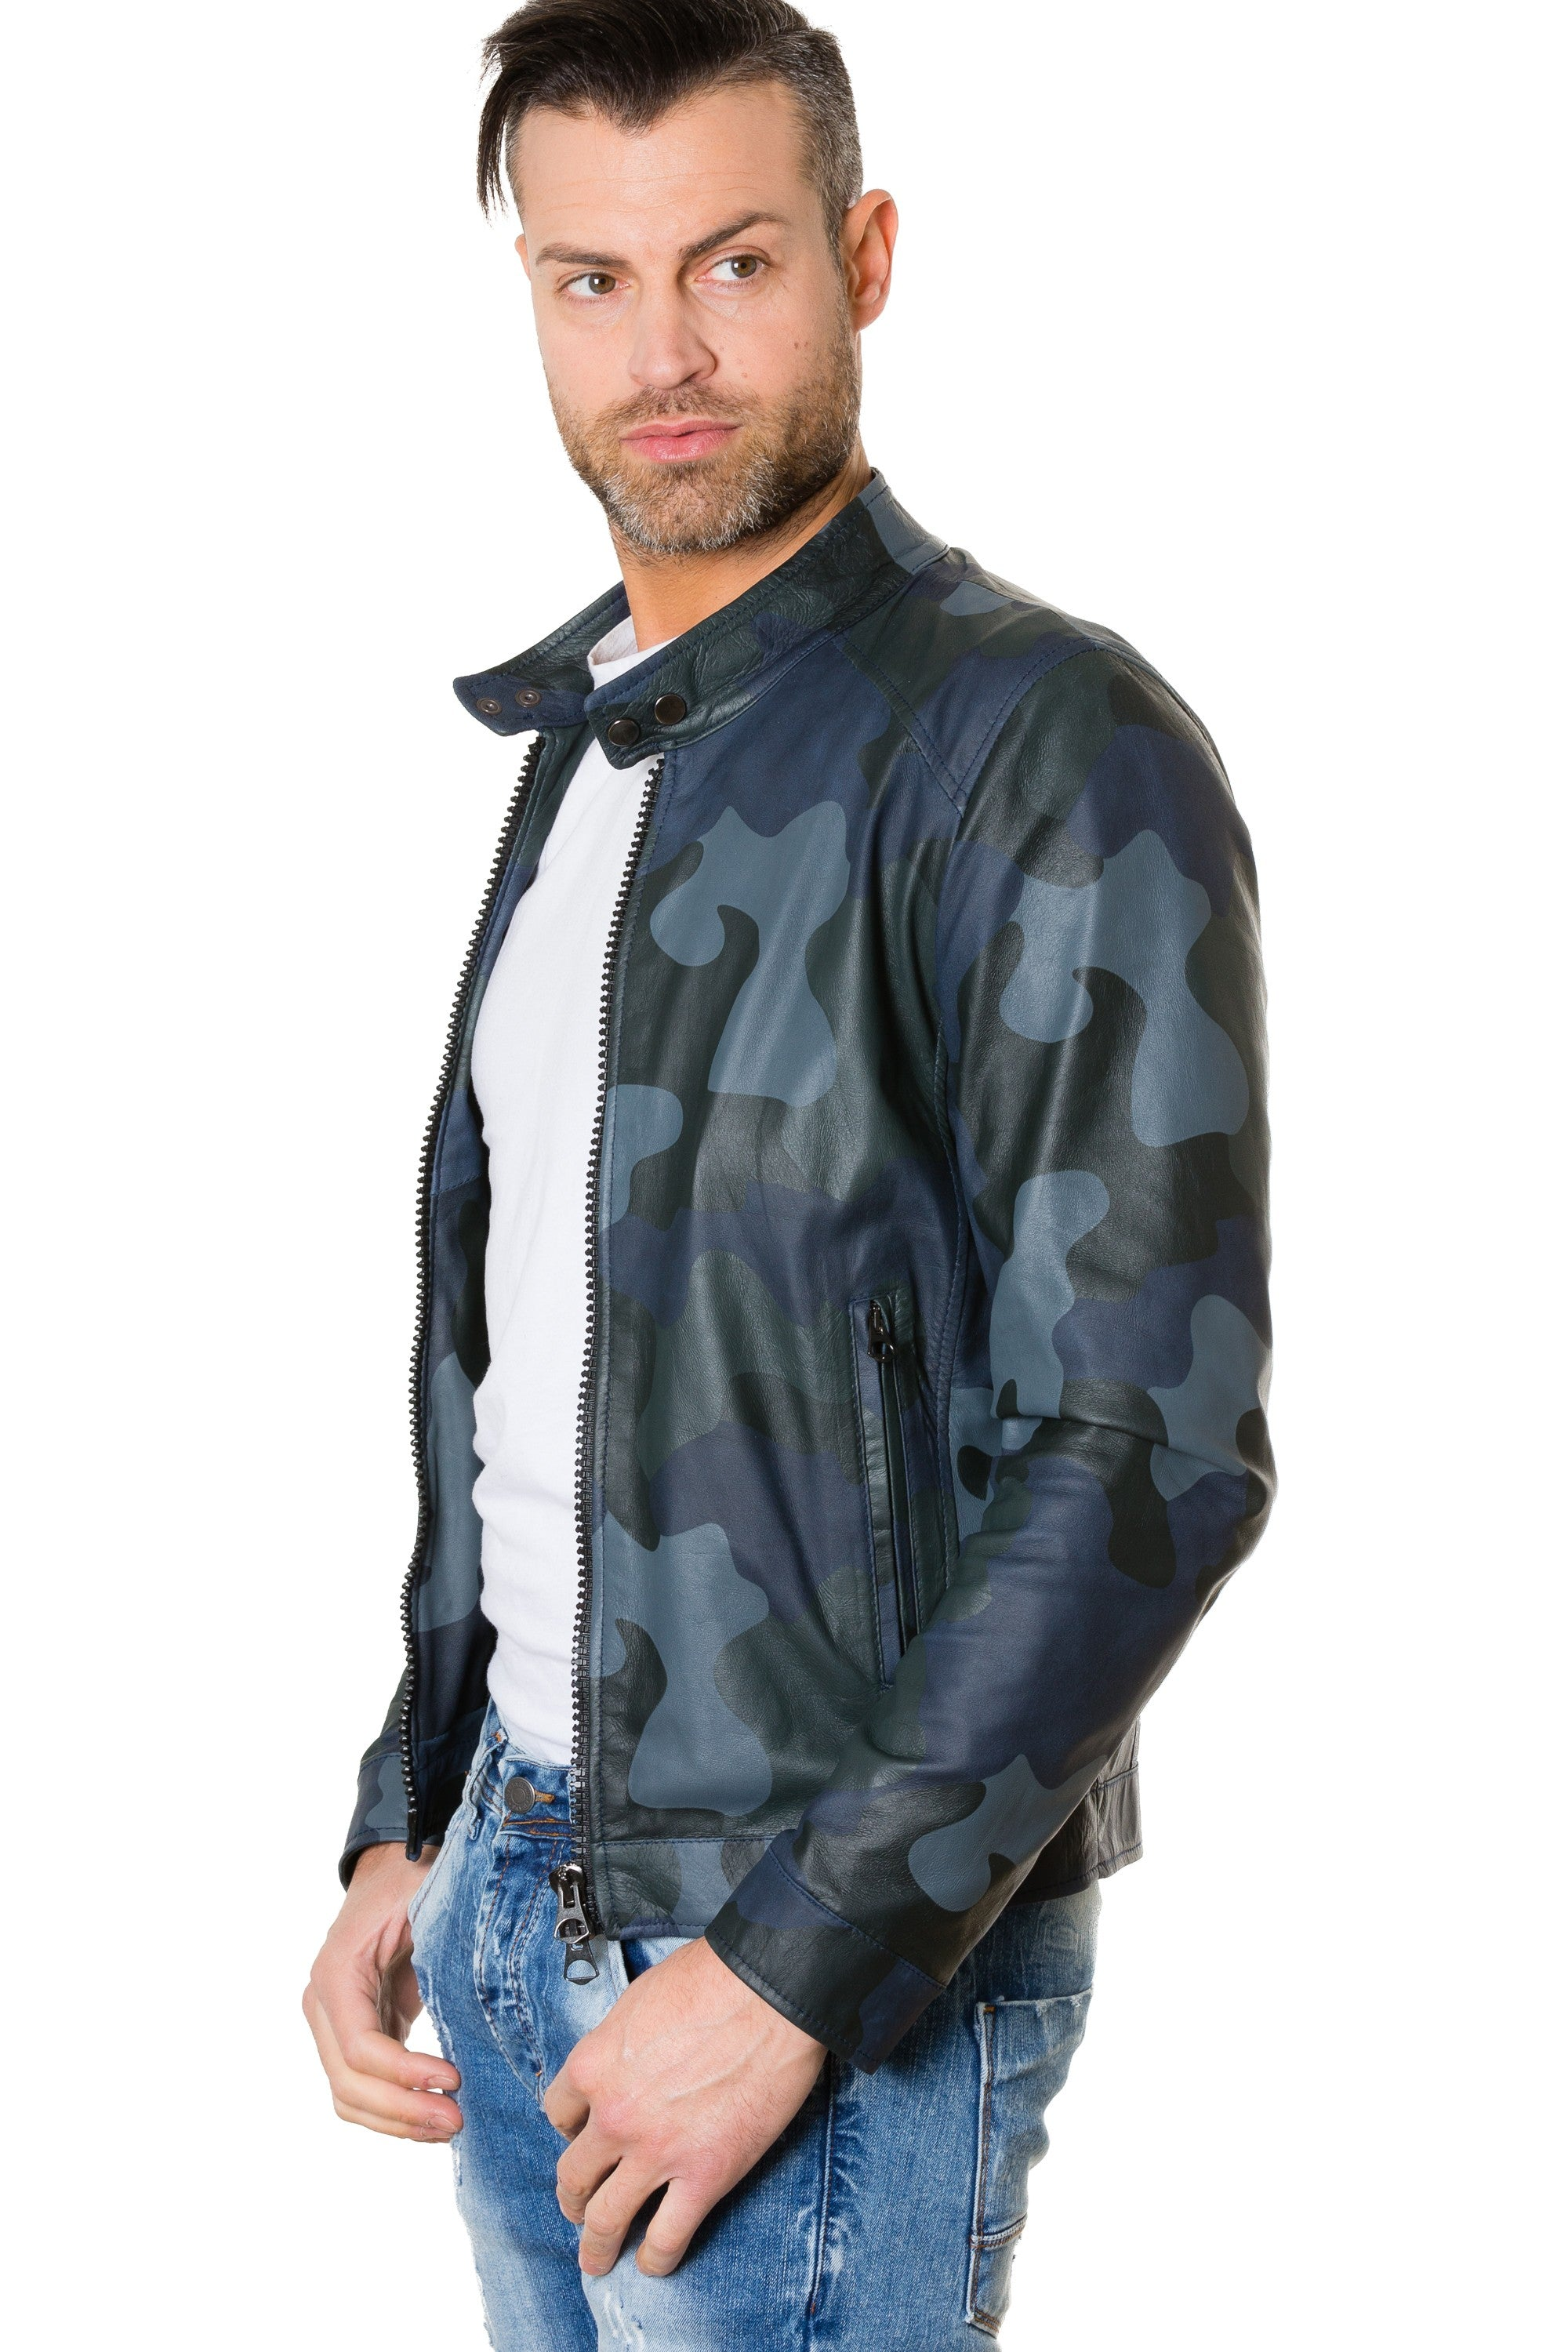 Men's Leather Jacket Blue Camouflage Ted